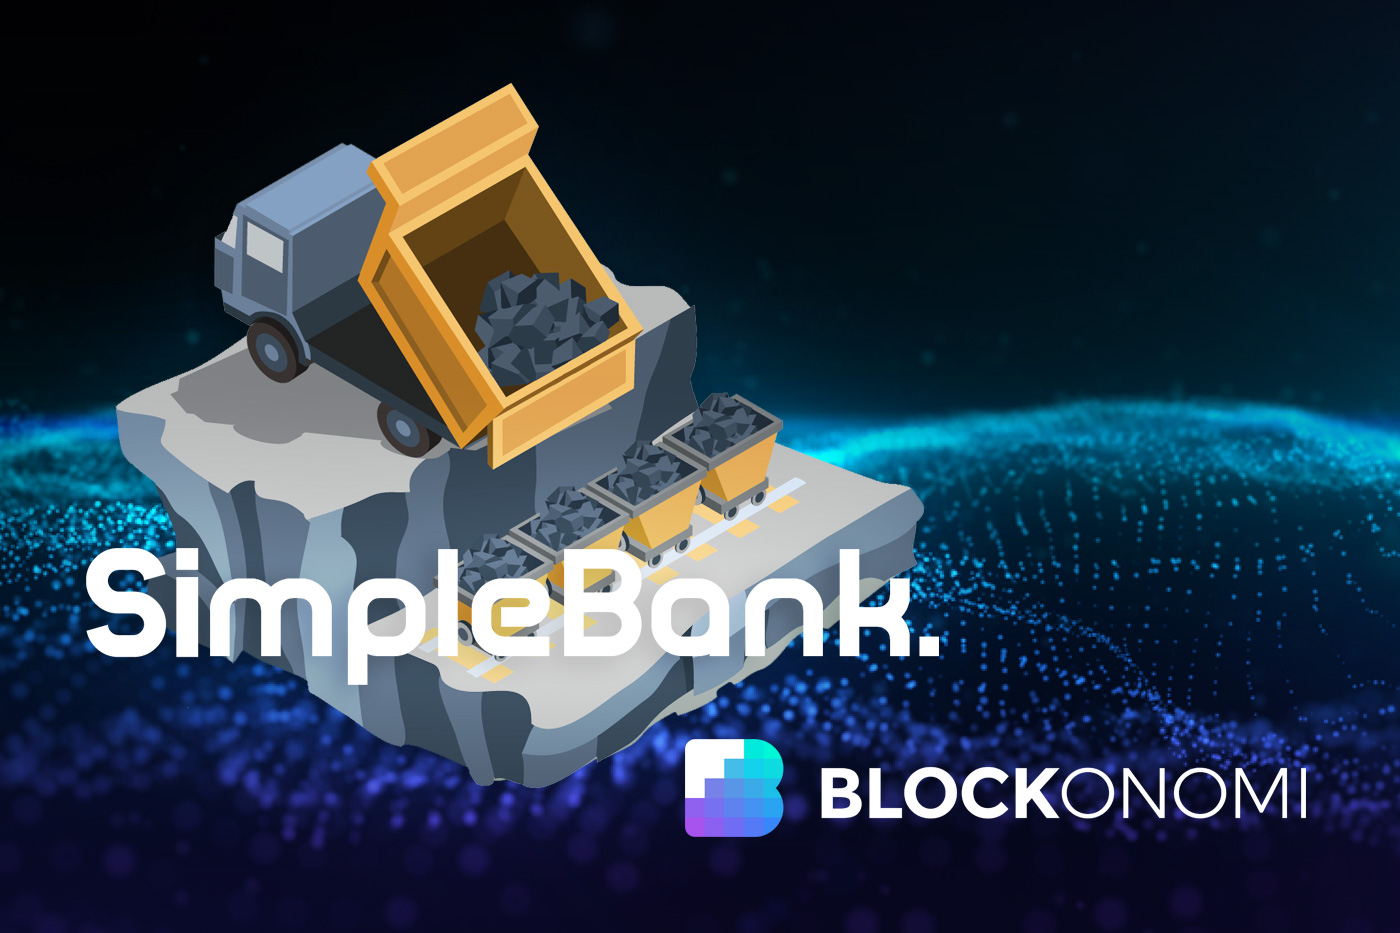 How to Mine SimpleBank